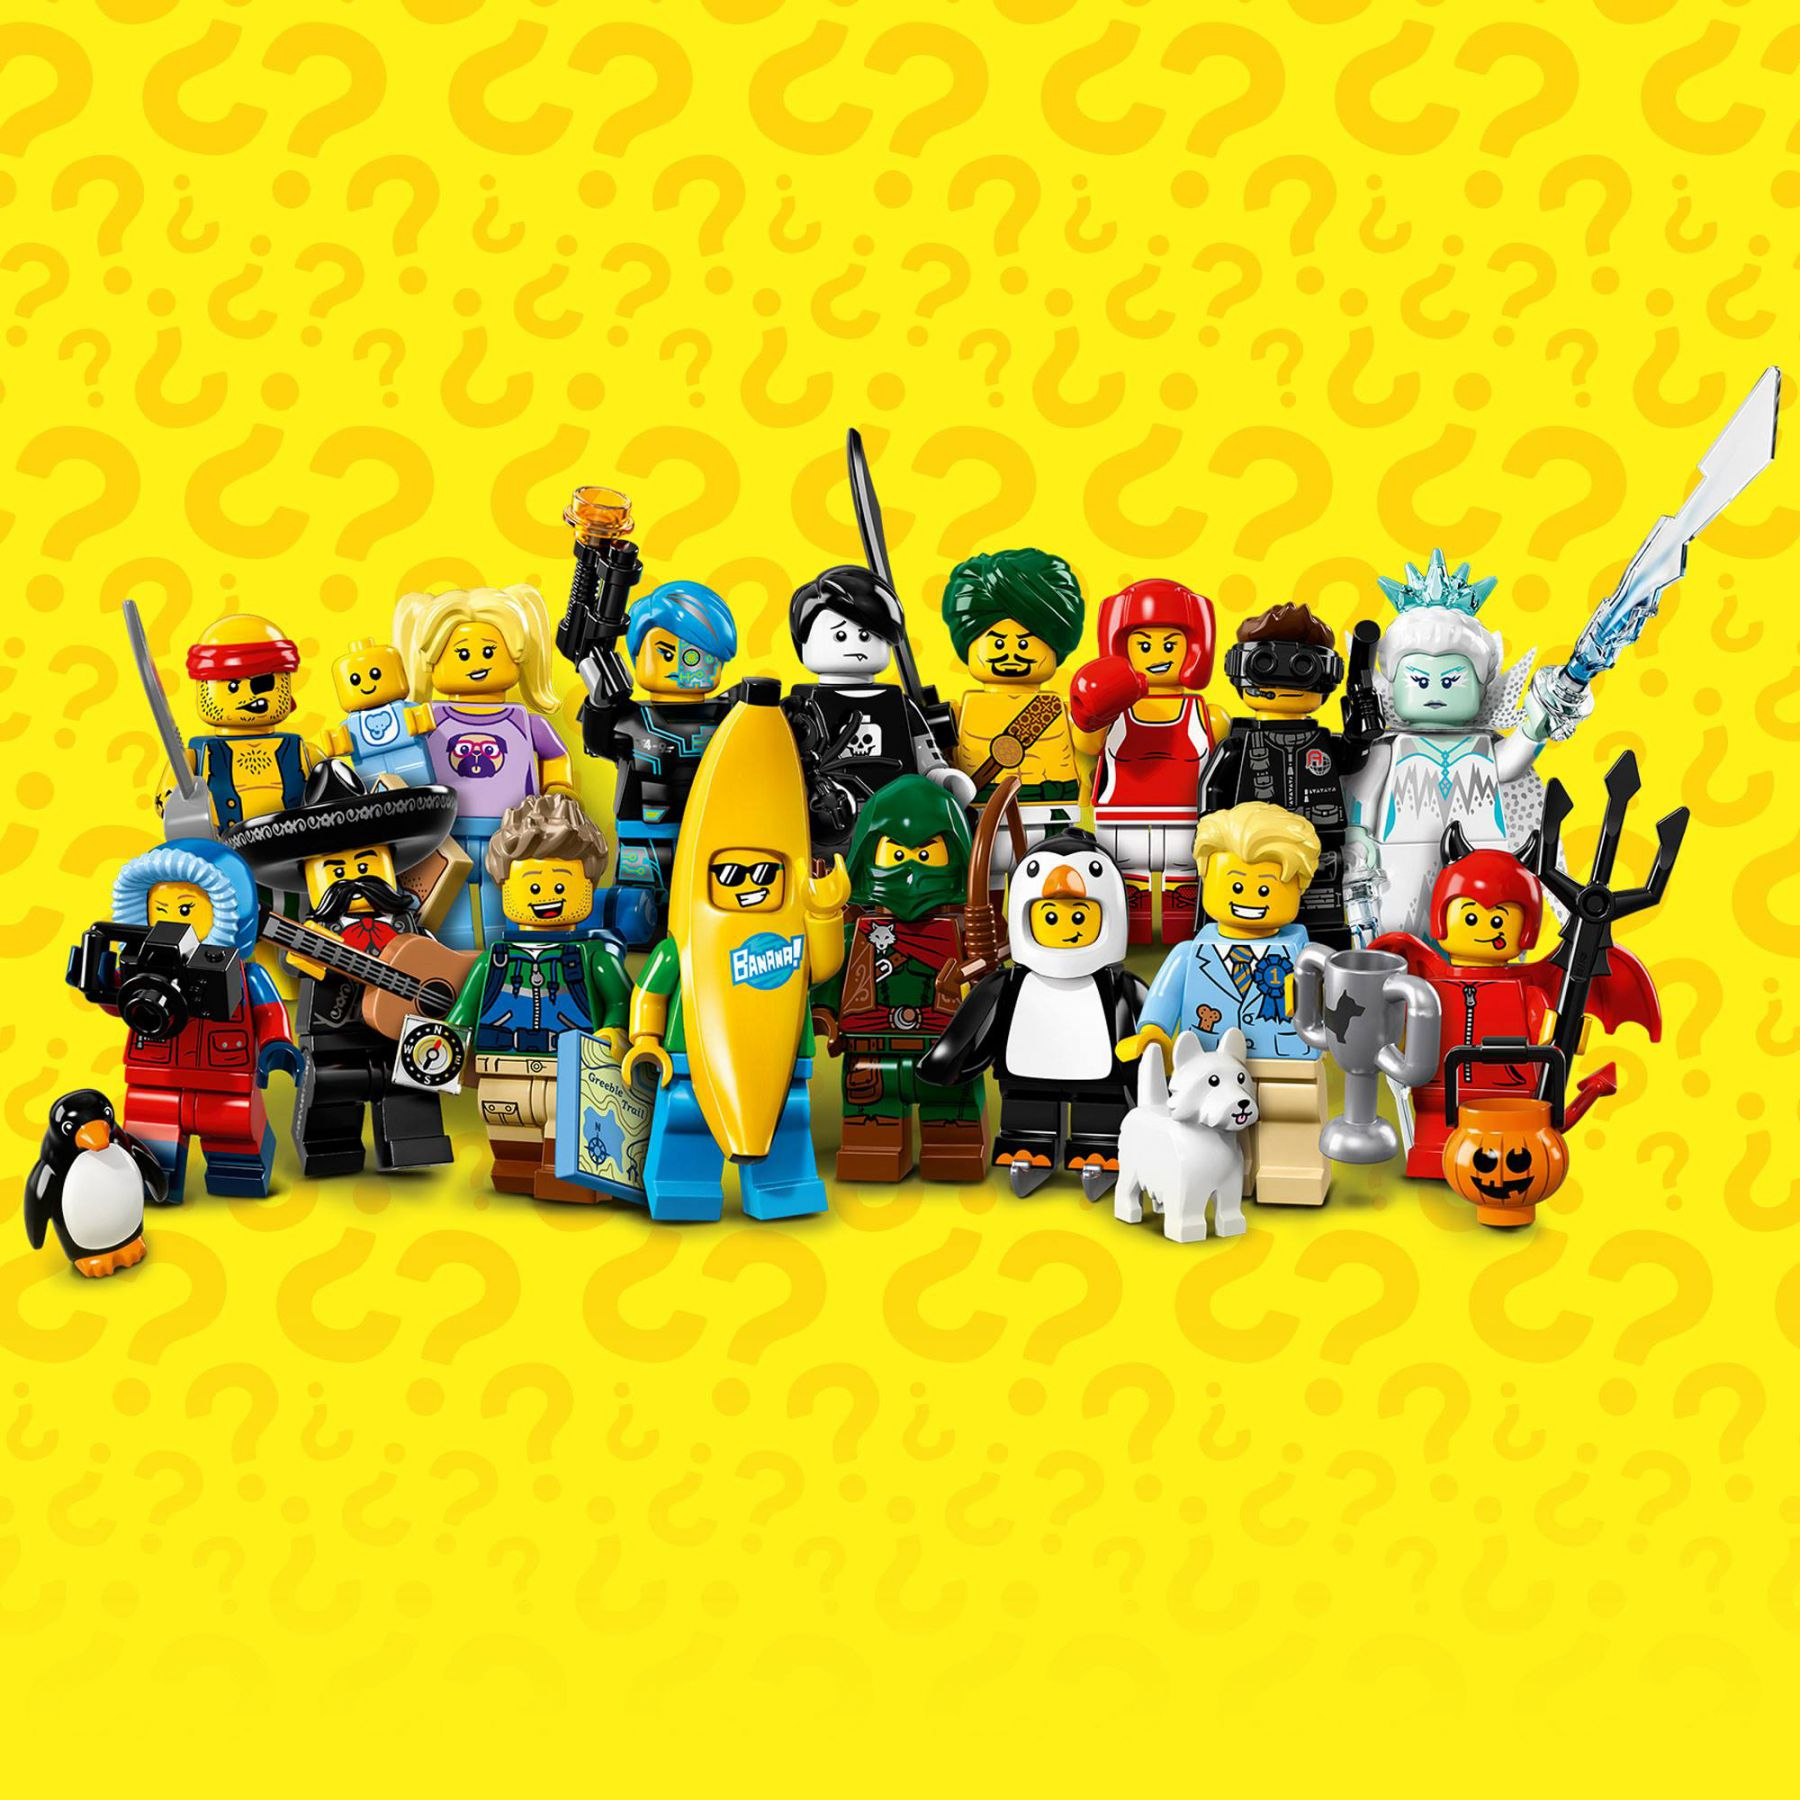 LEGO Collectable Minifigures 71013 LEGO® Minifiguren Serie 16 LEGO_Minifigures_Series_16.jpg